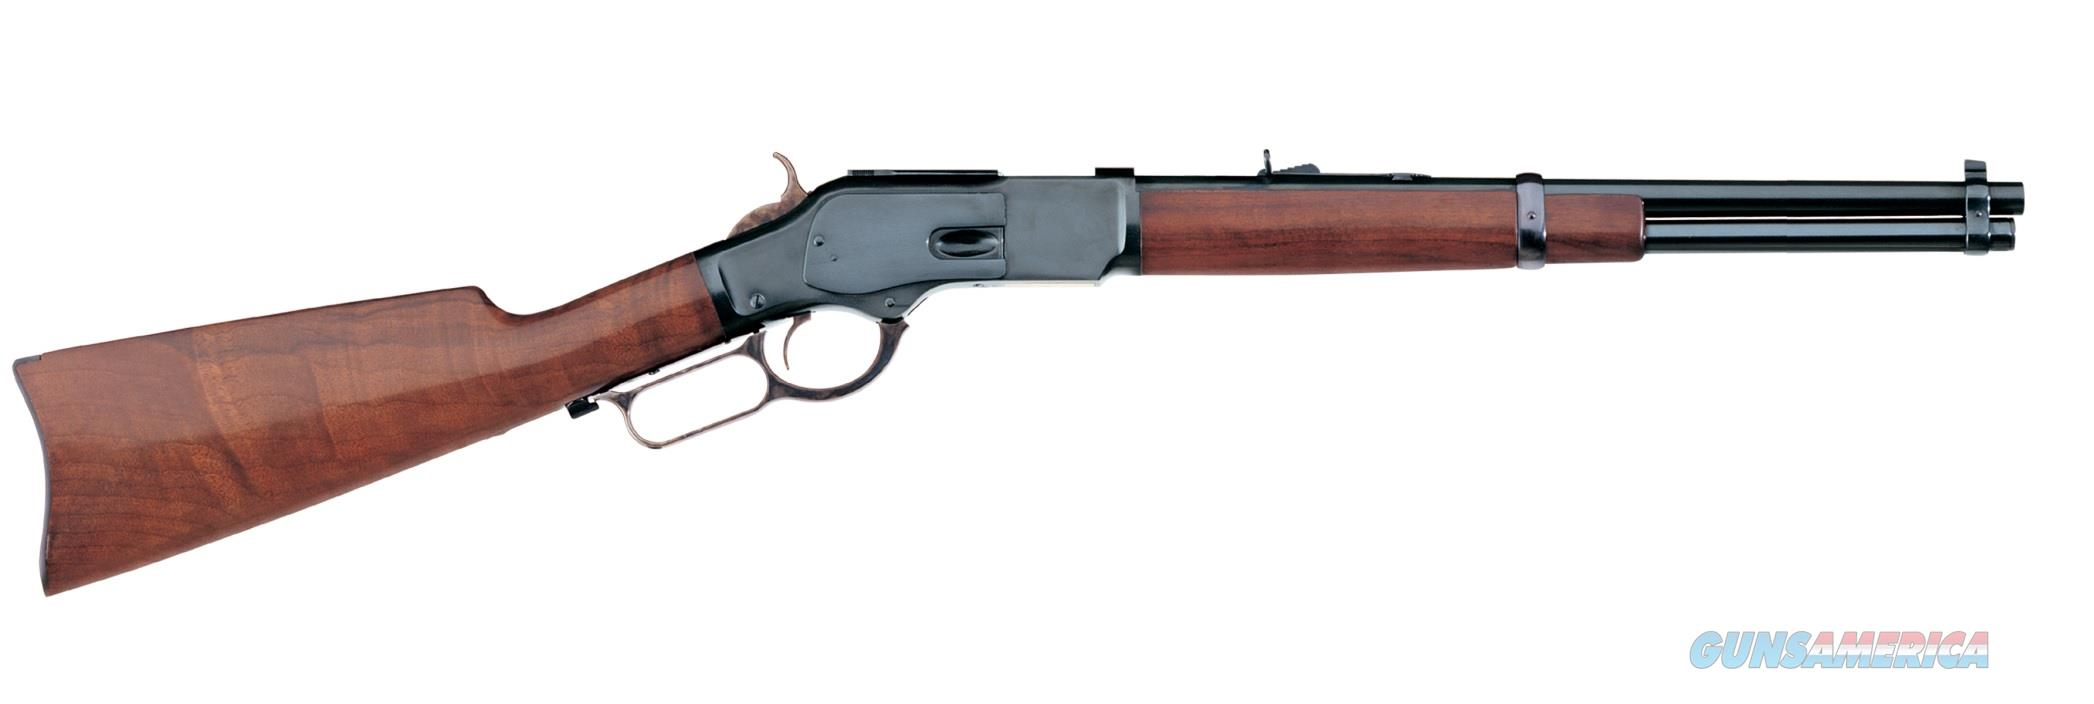 "Uberti 1873 Carbine Rifle .45 Colt 19"" 10 Rds 342800   Guns > Rifles > Uberti Rifles > Lever Action"